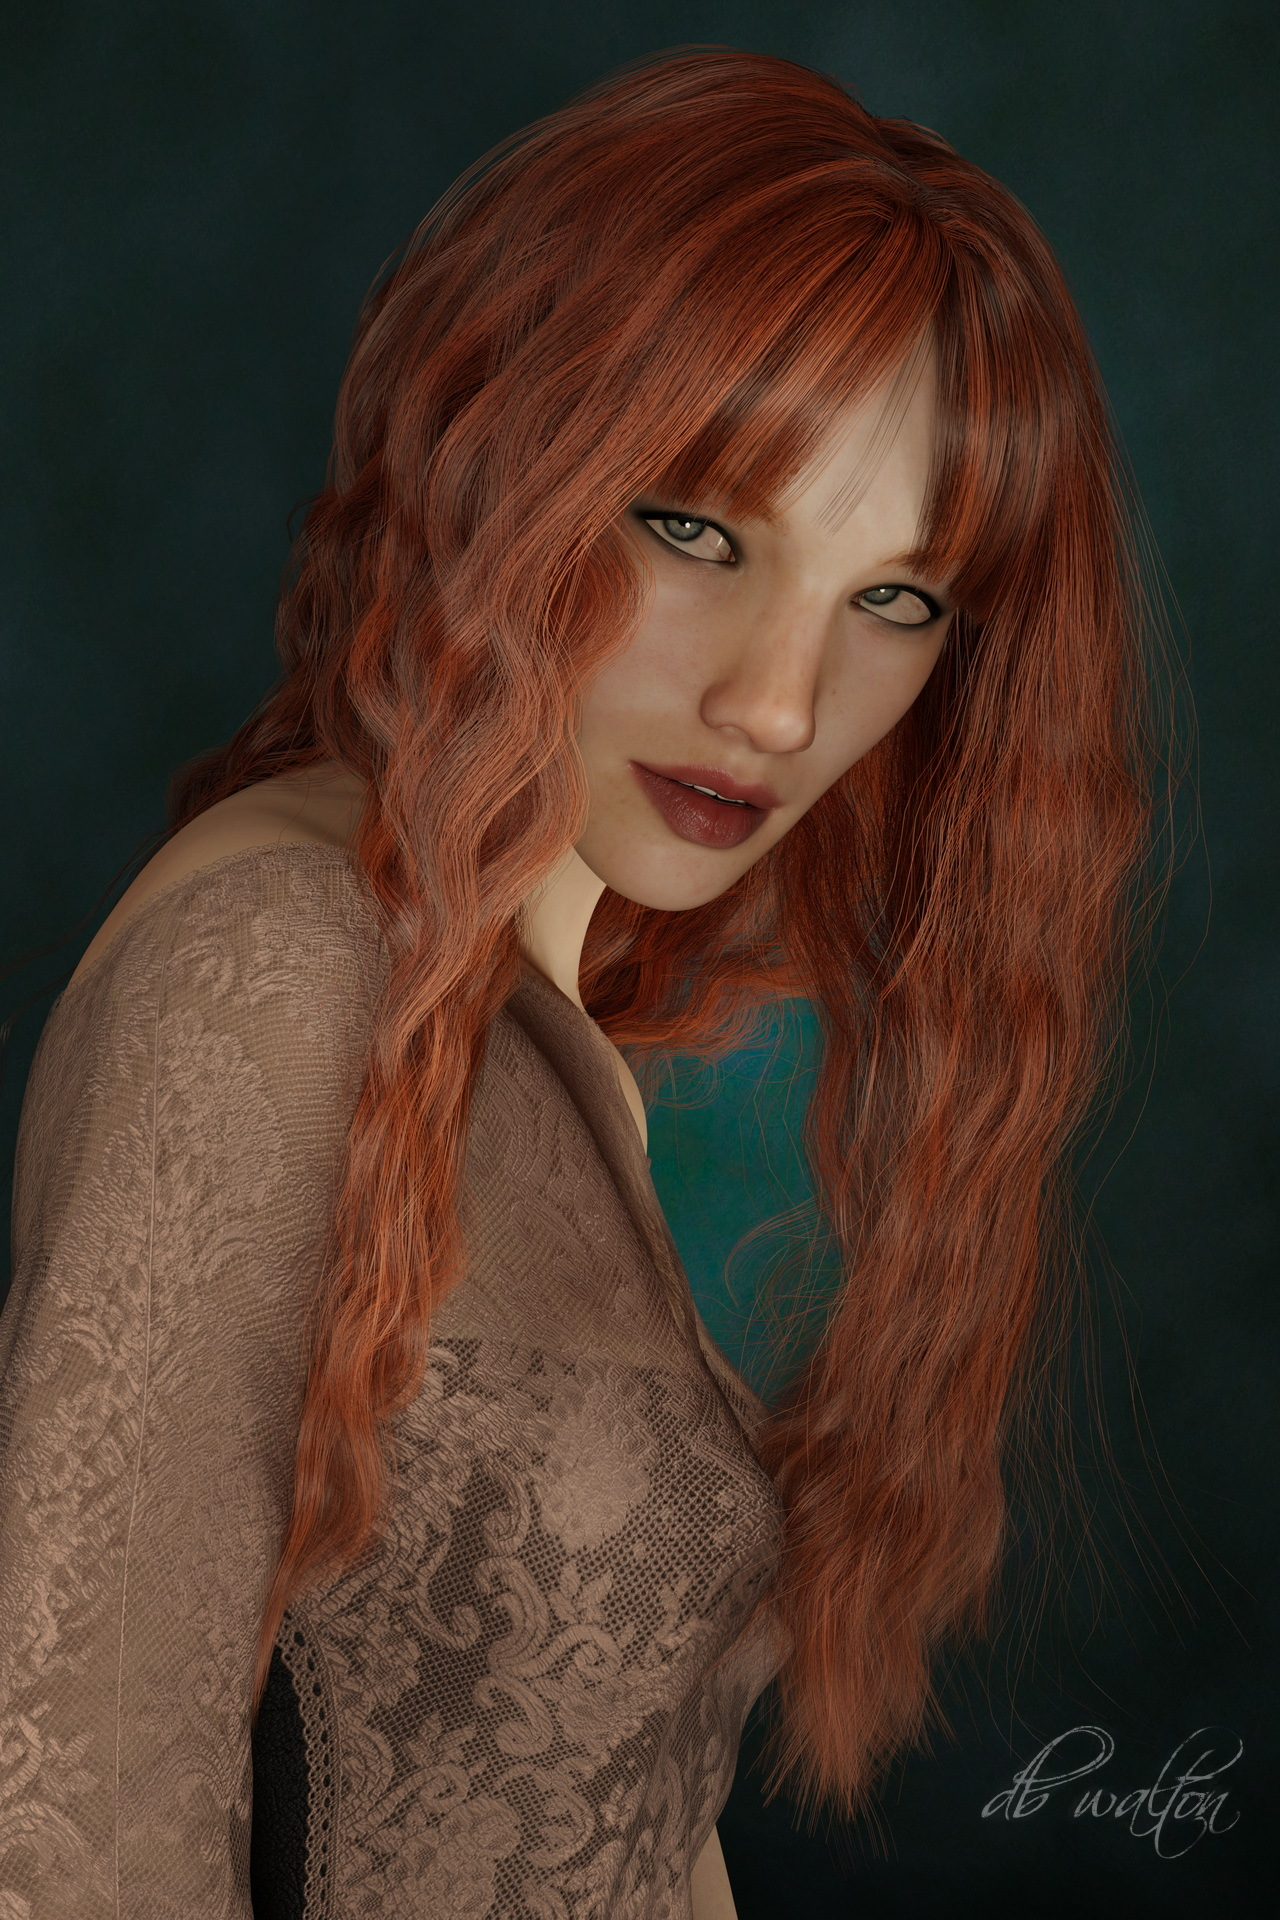 Dazzling Ginger 3 by dbwalton